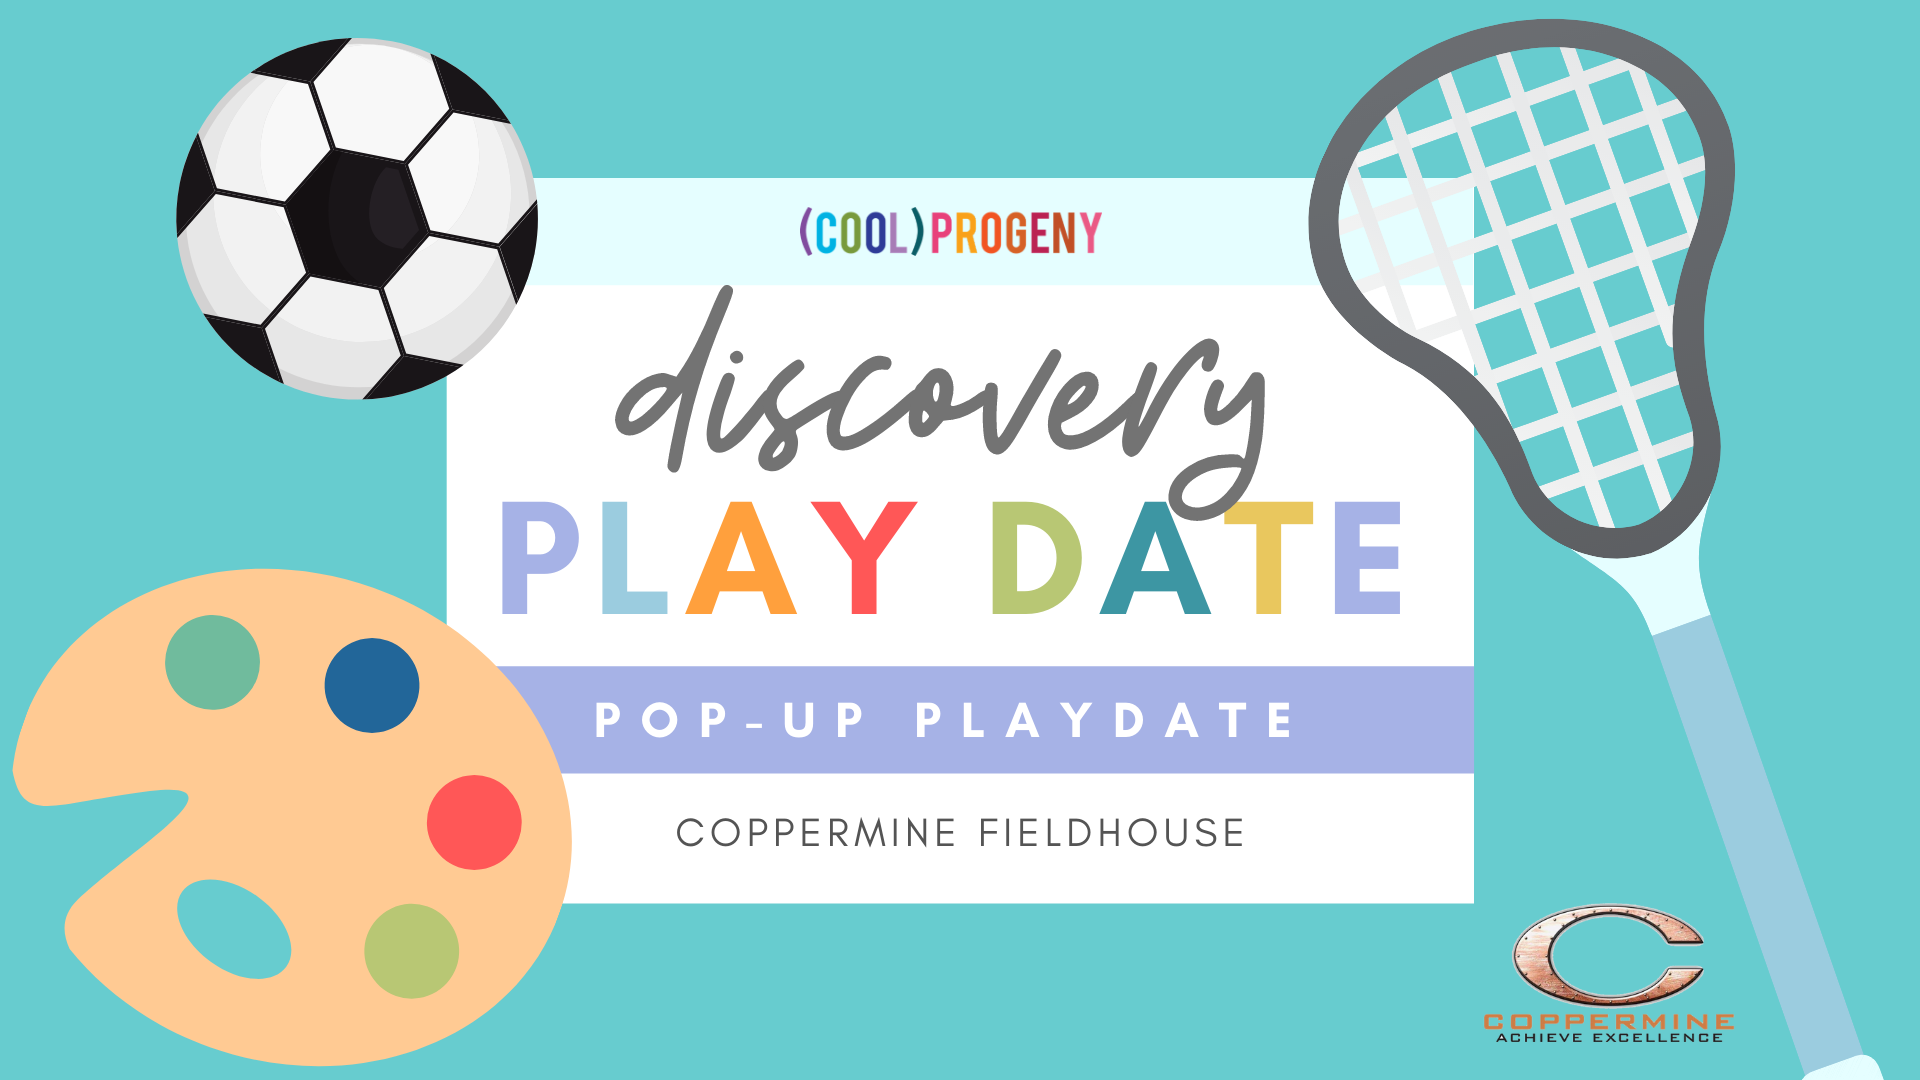 Discovery Play Date at Coppermine Fieldhouse